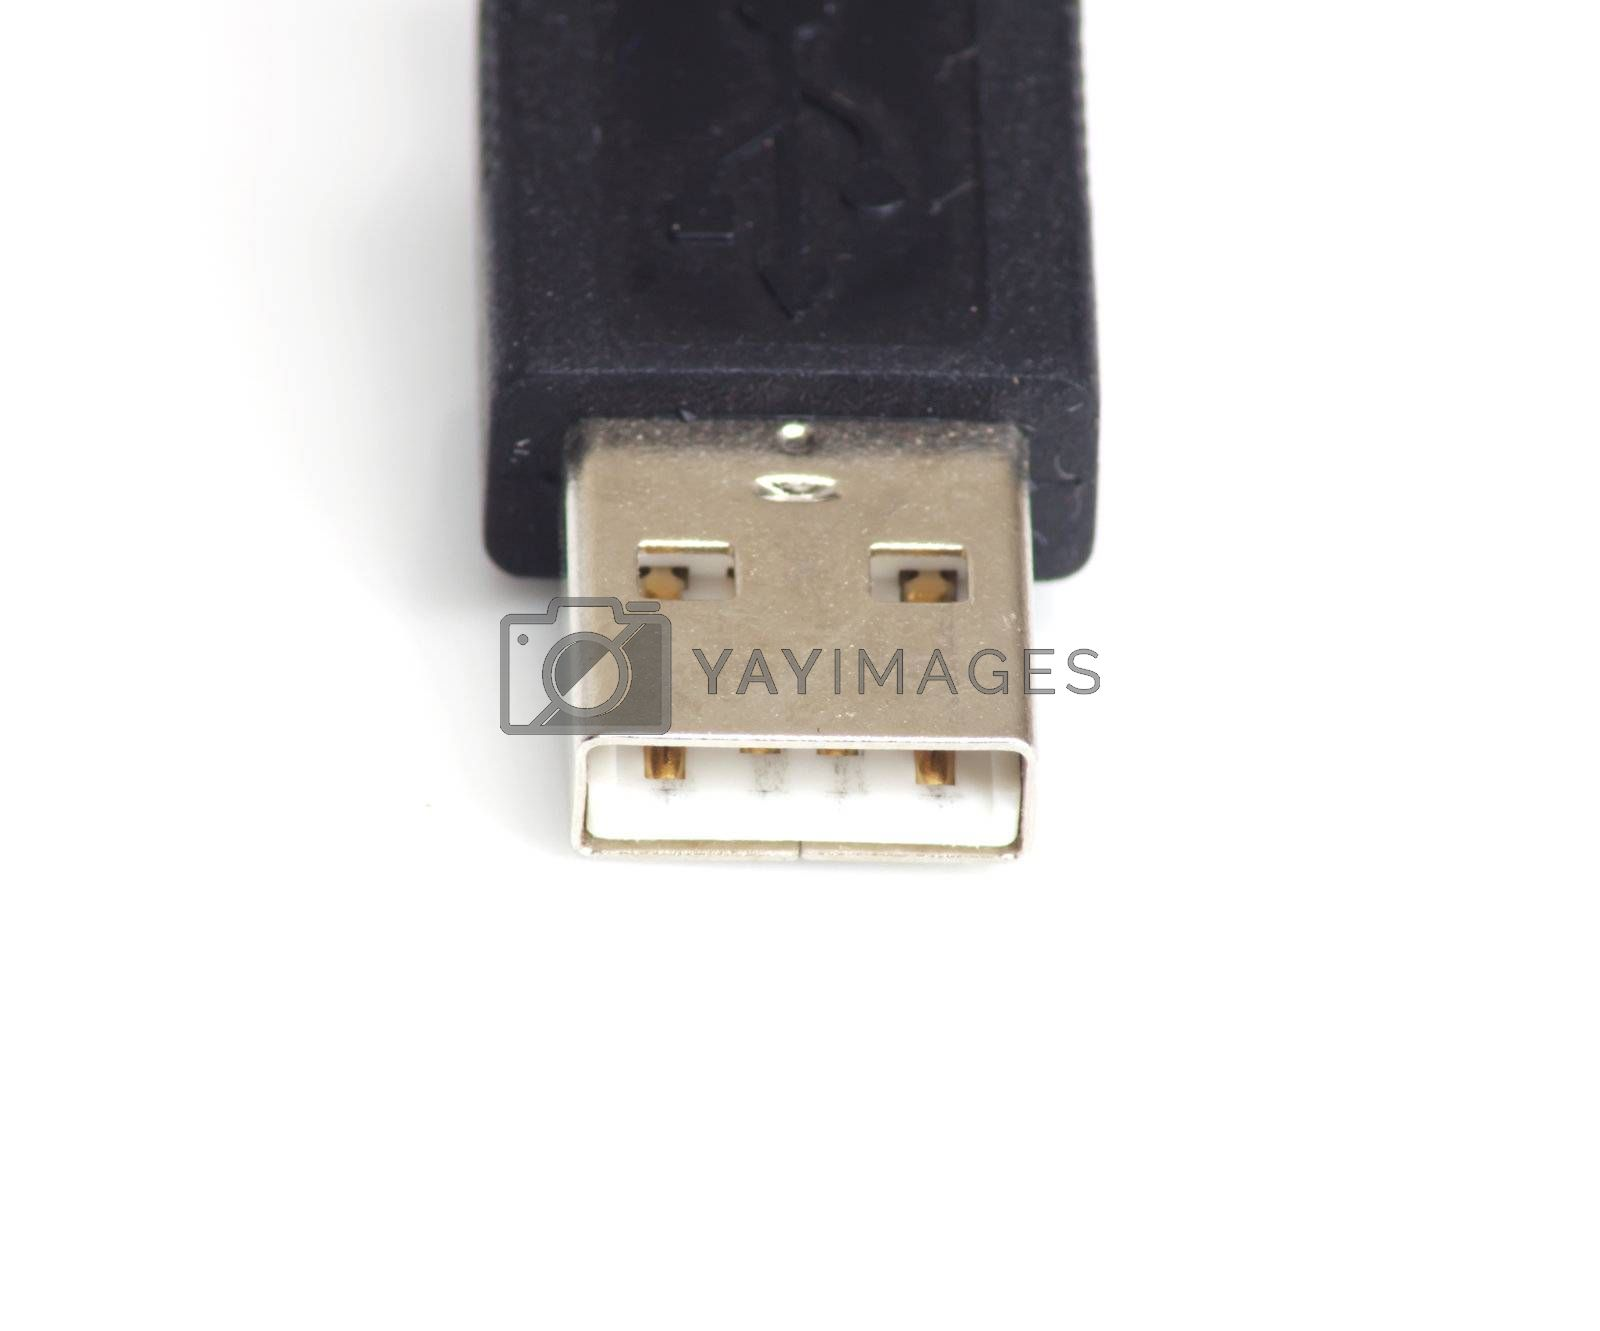 Usb cable isolated over white